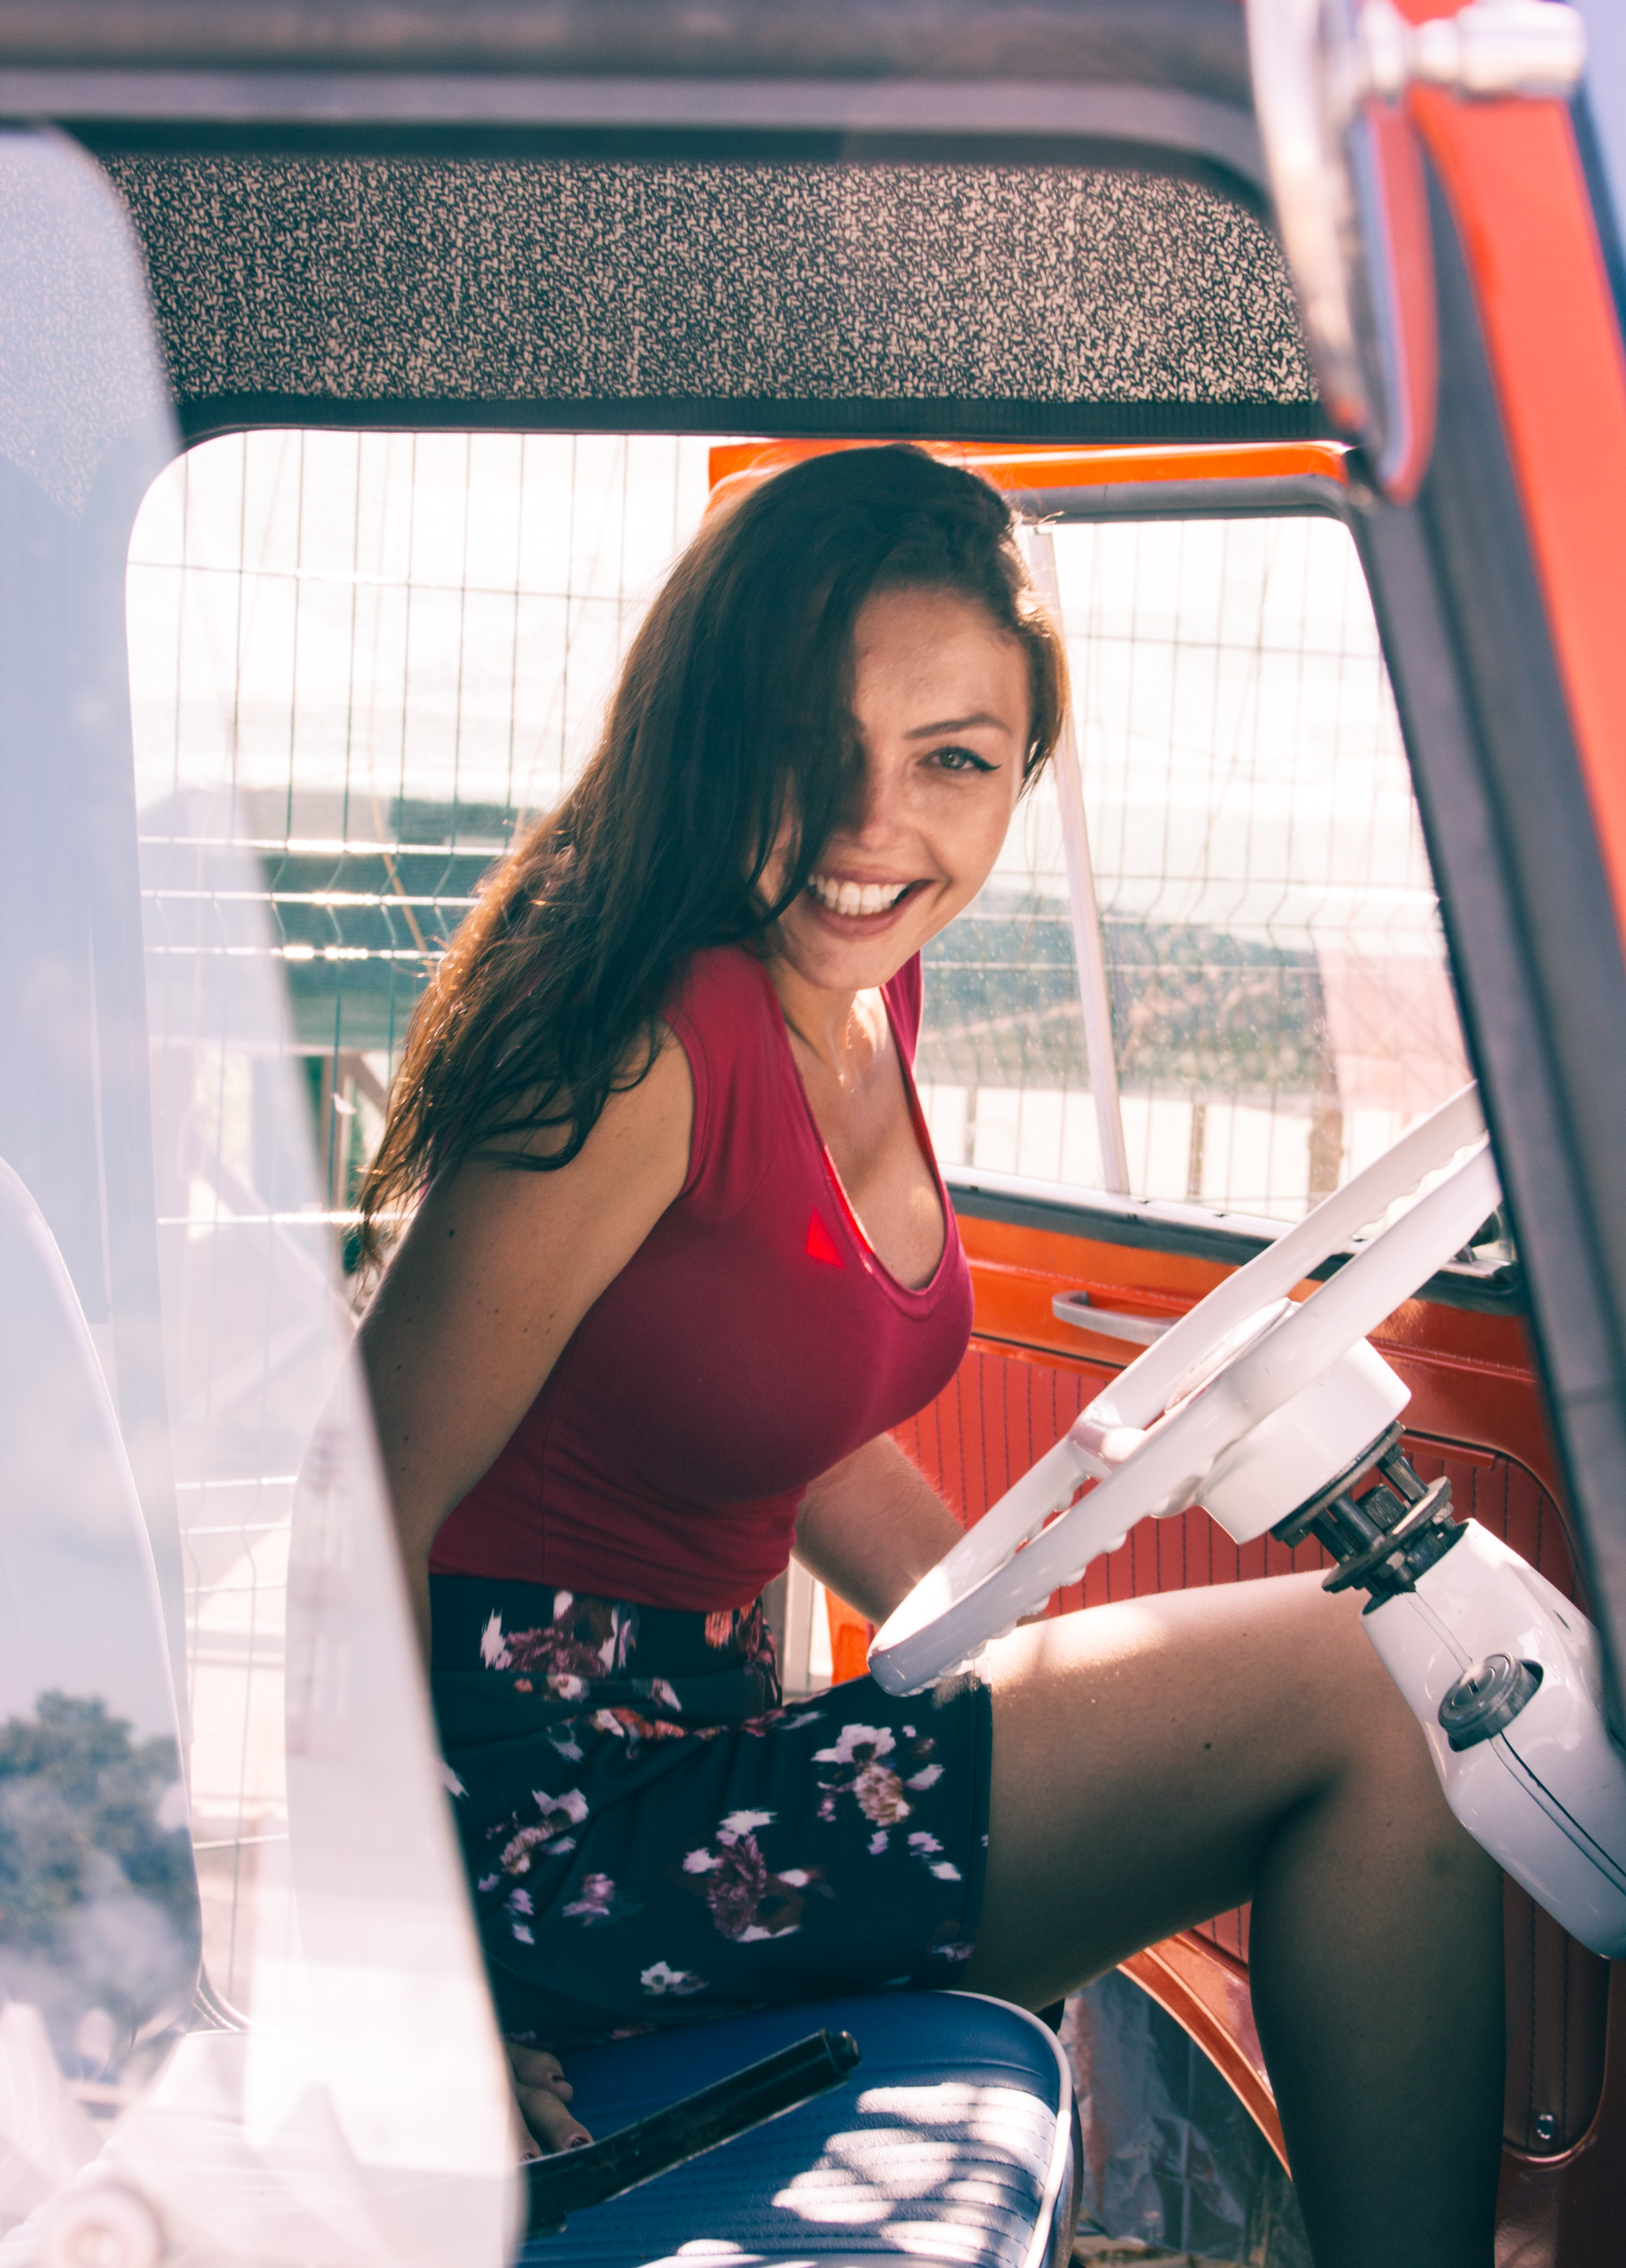 Woman in Red Shirt Sitting on Vehicle Seat at Daytime